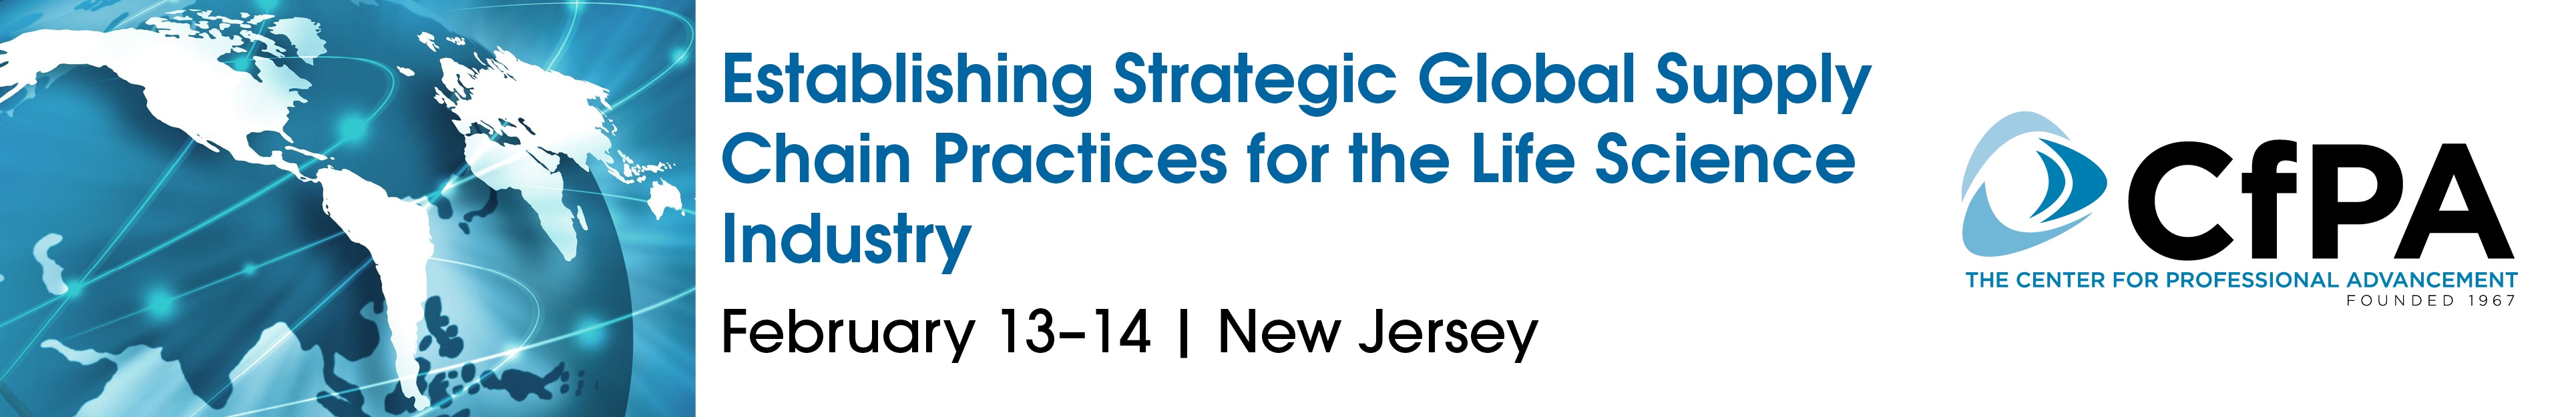 Establishing Strategic Global Supply Chain Practices for the Life Science Industry